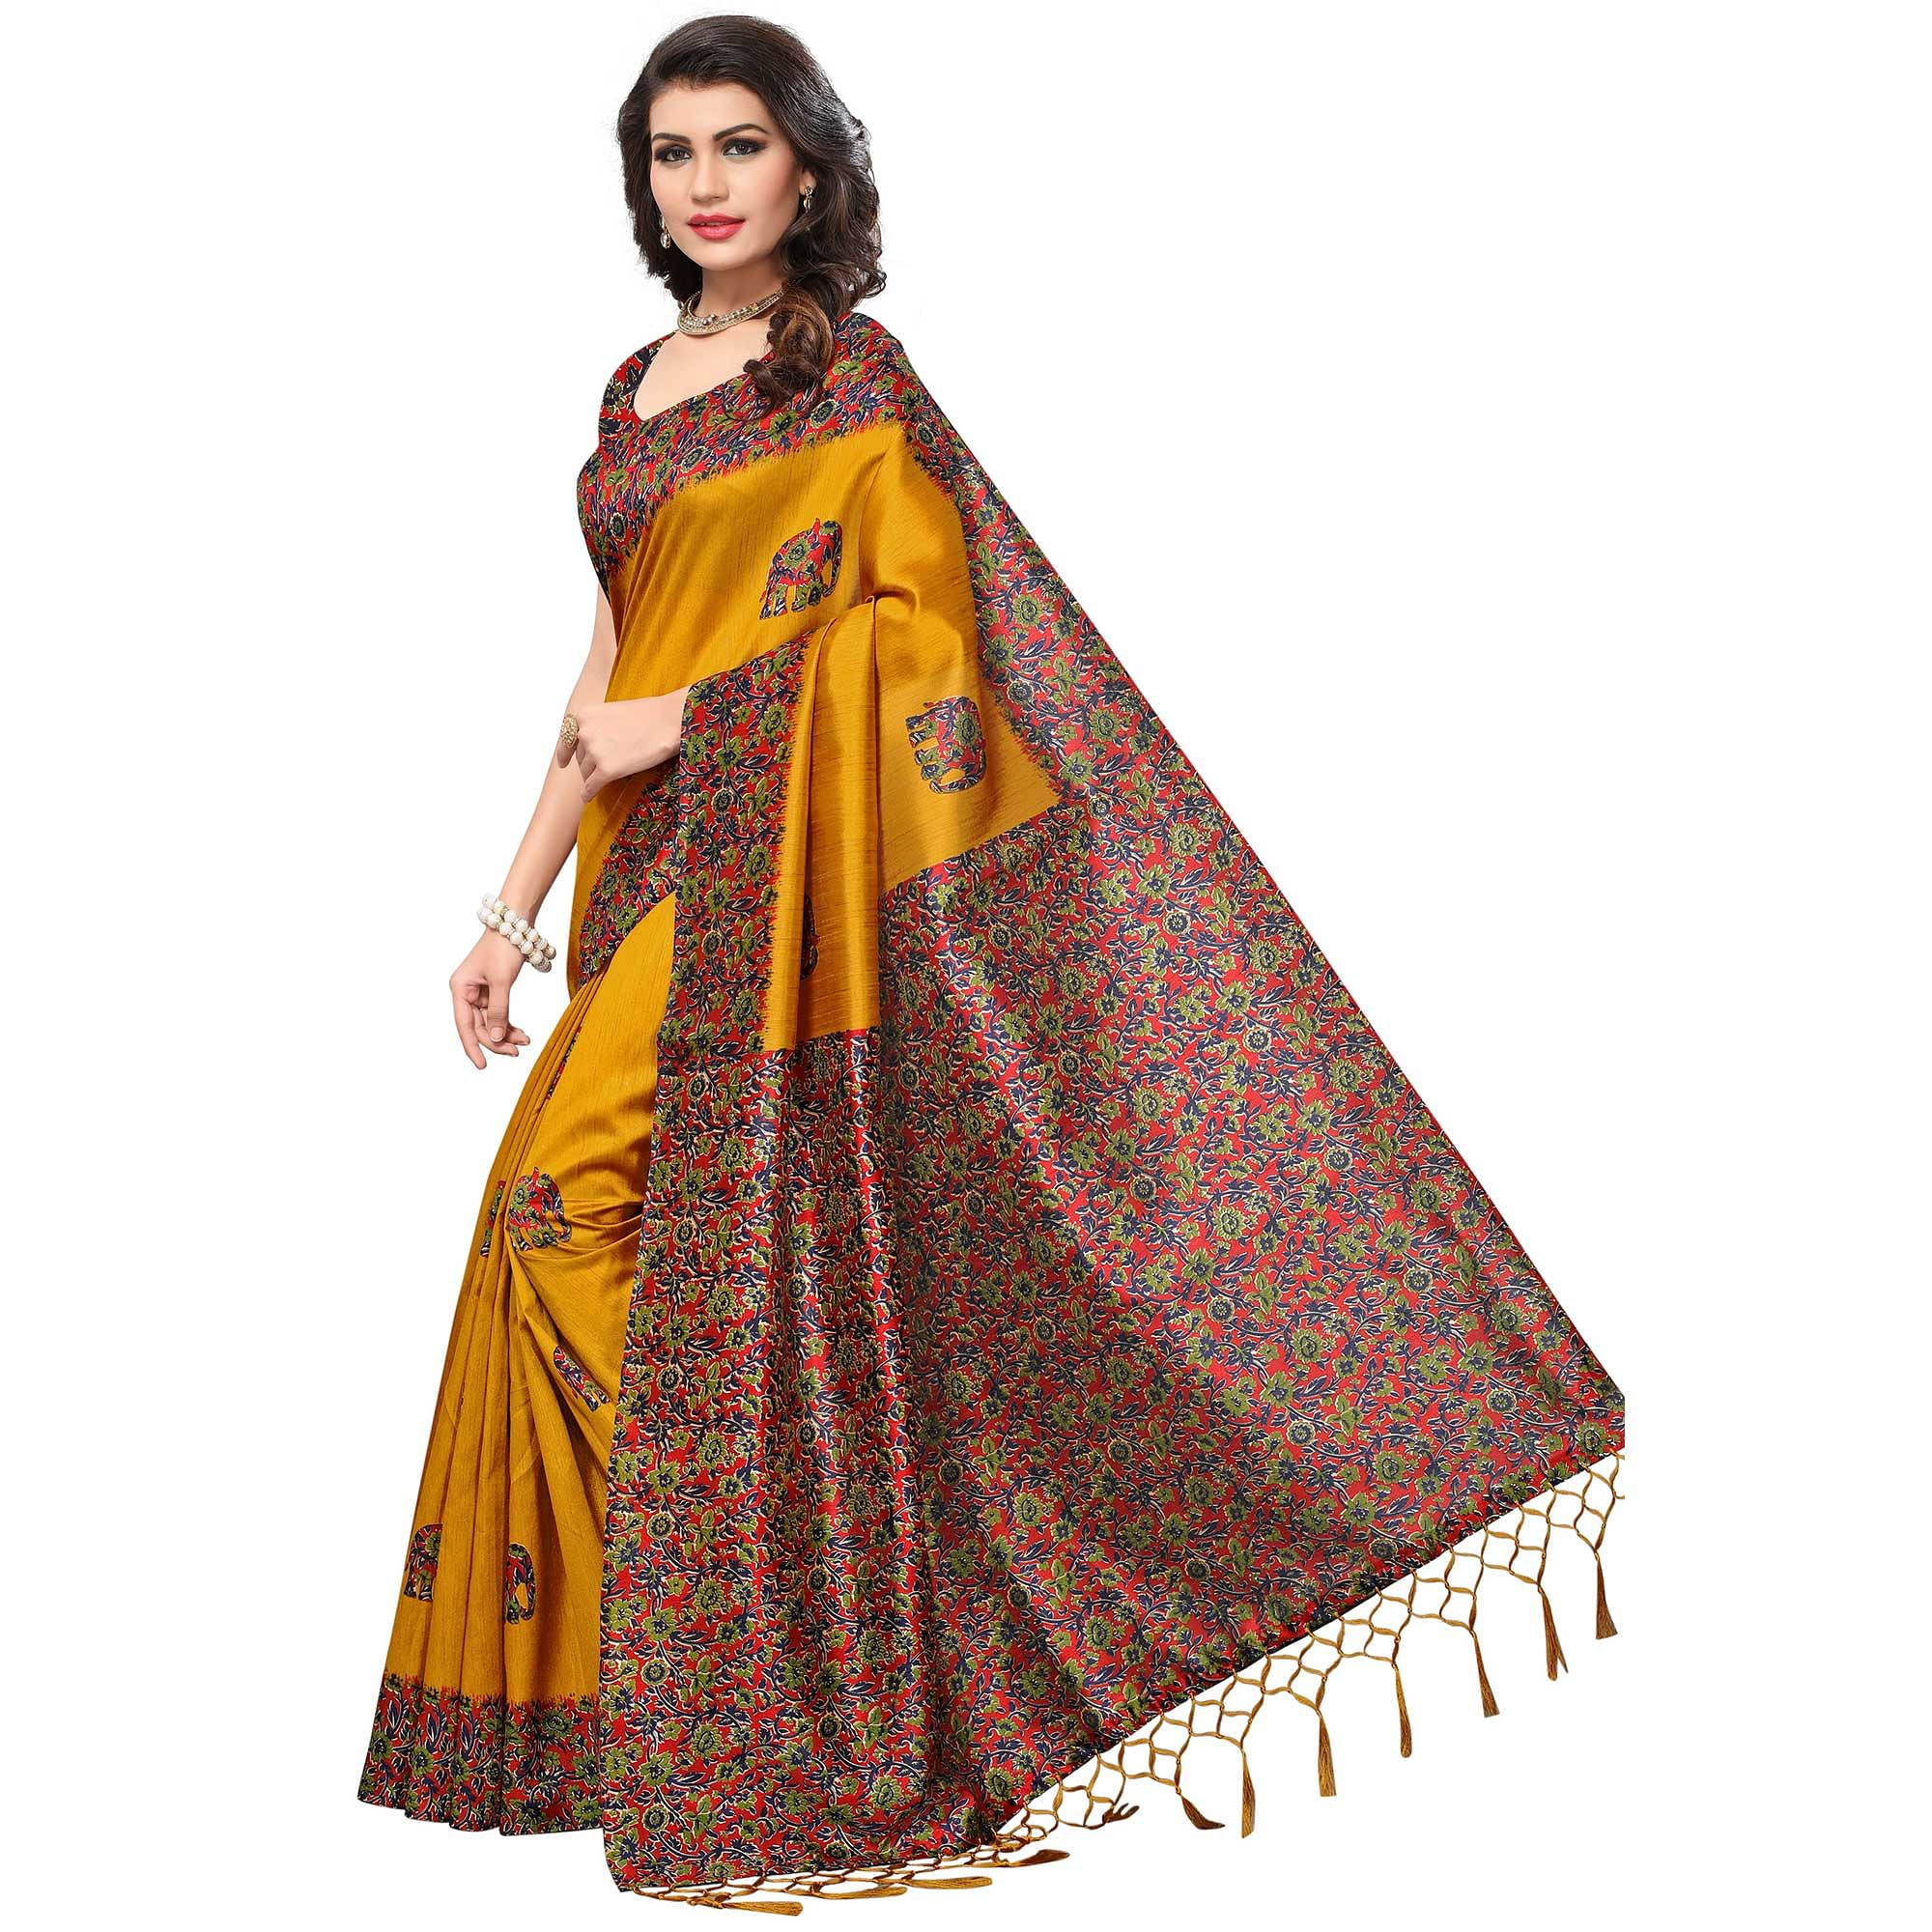 Eye-Catching Yellow Colored Festive Wear Printed Silk Saree